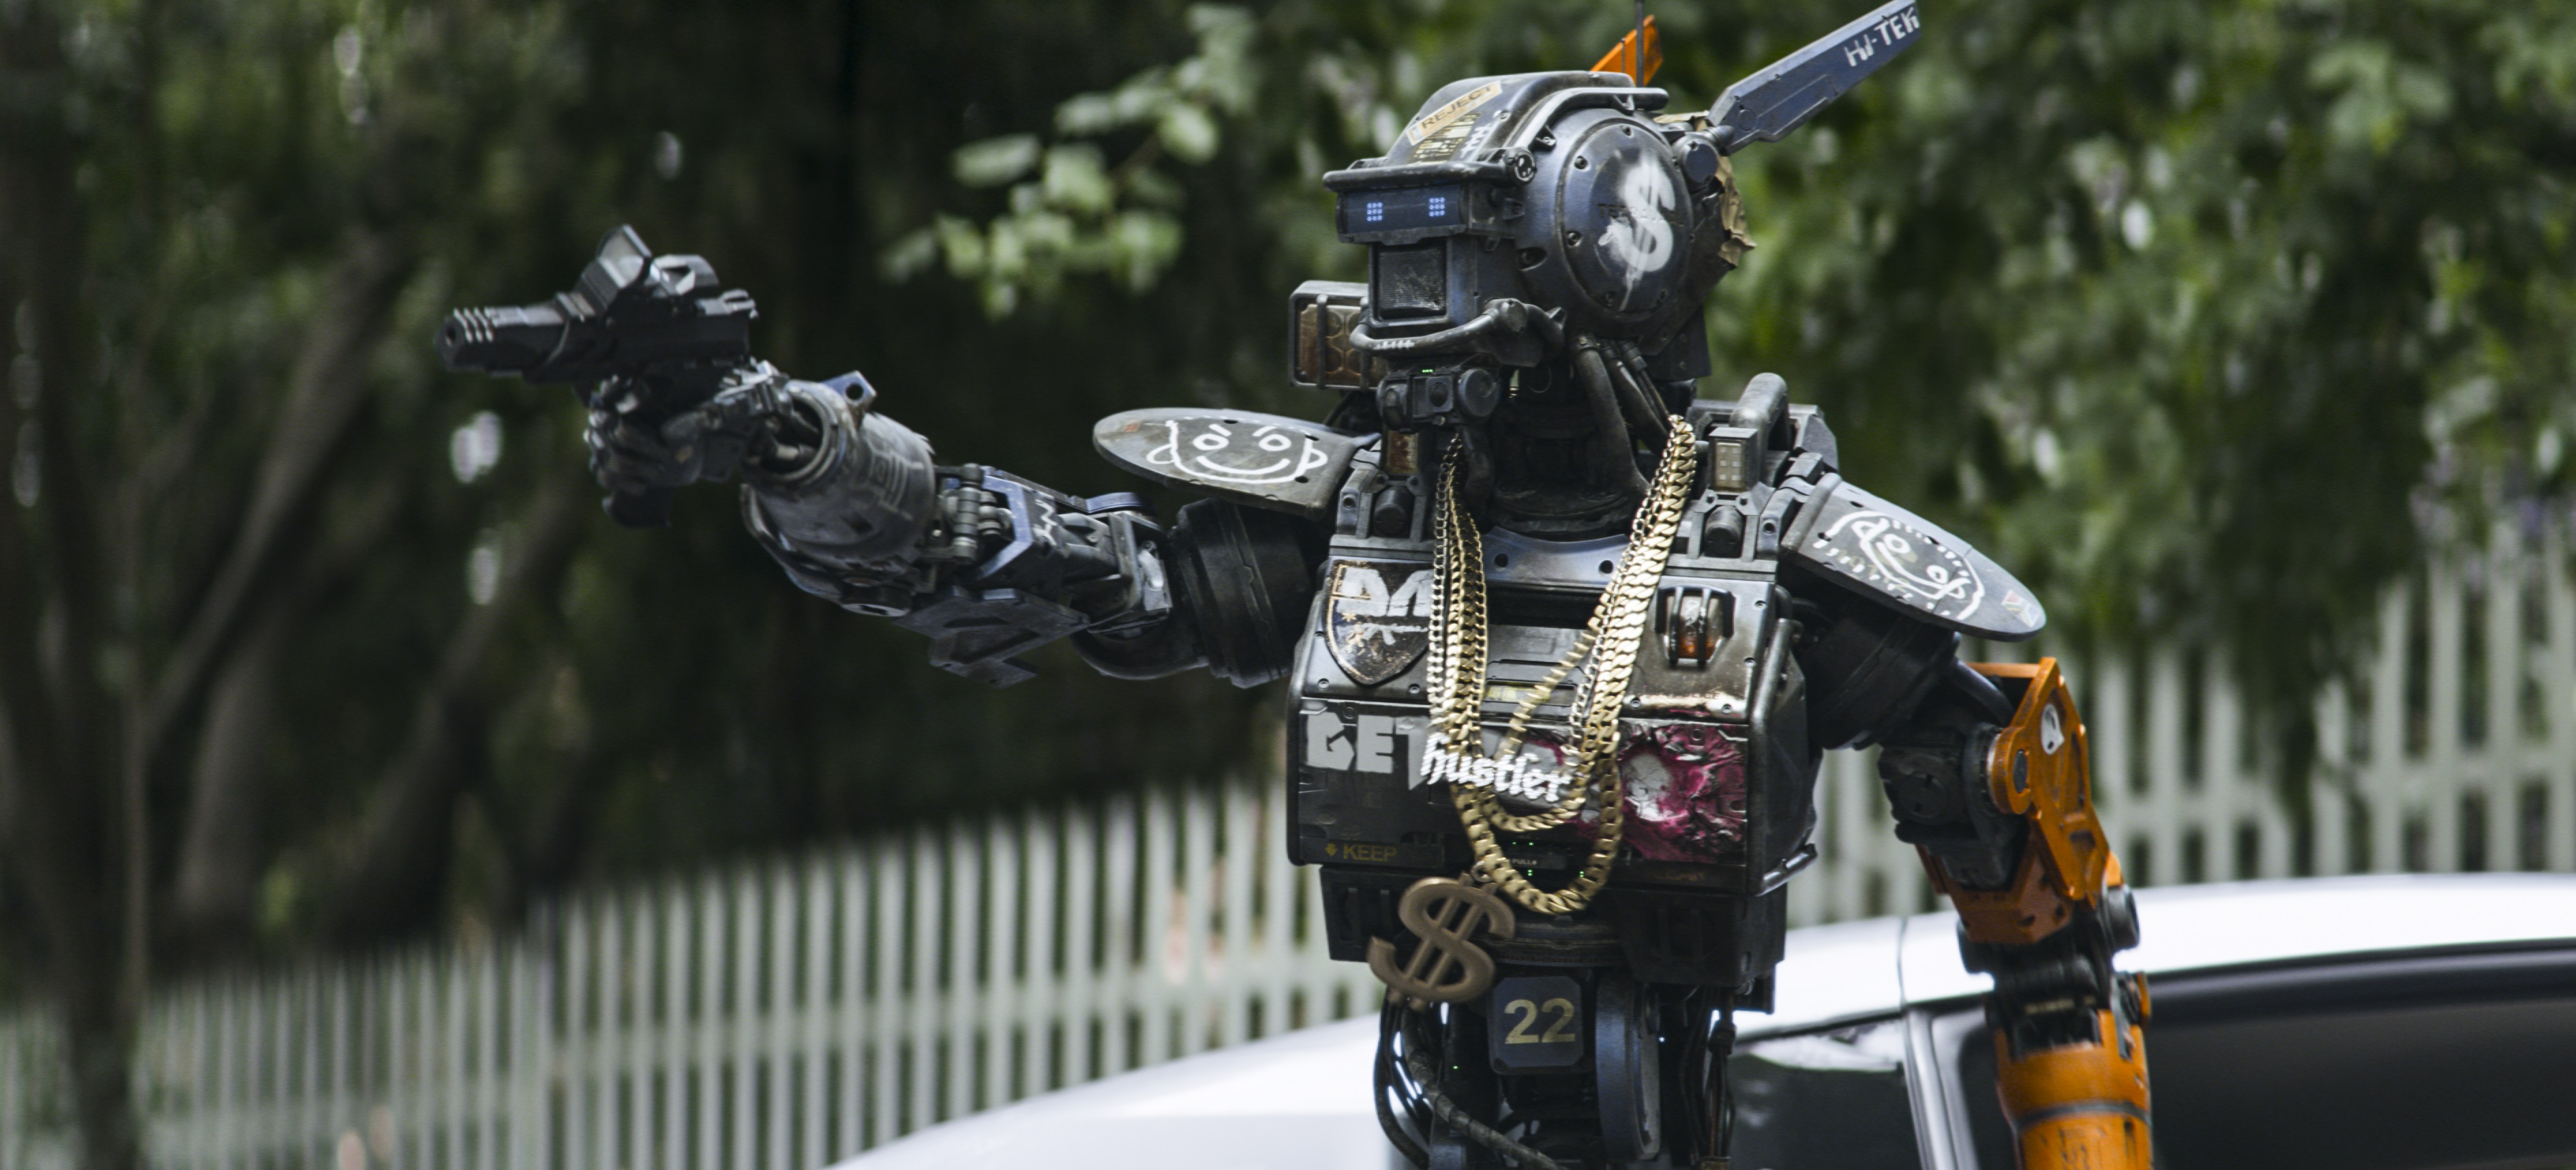 Chappie goes bling bling